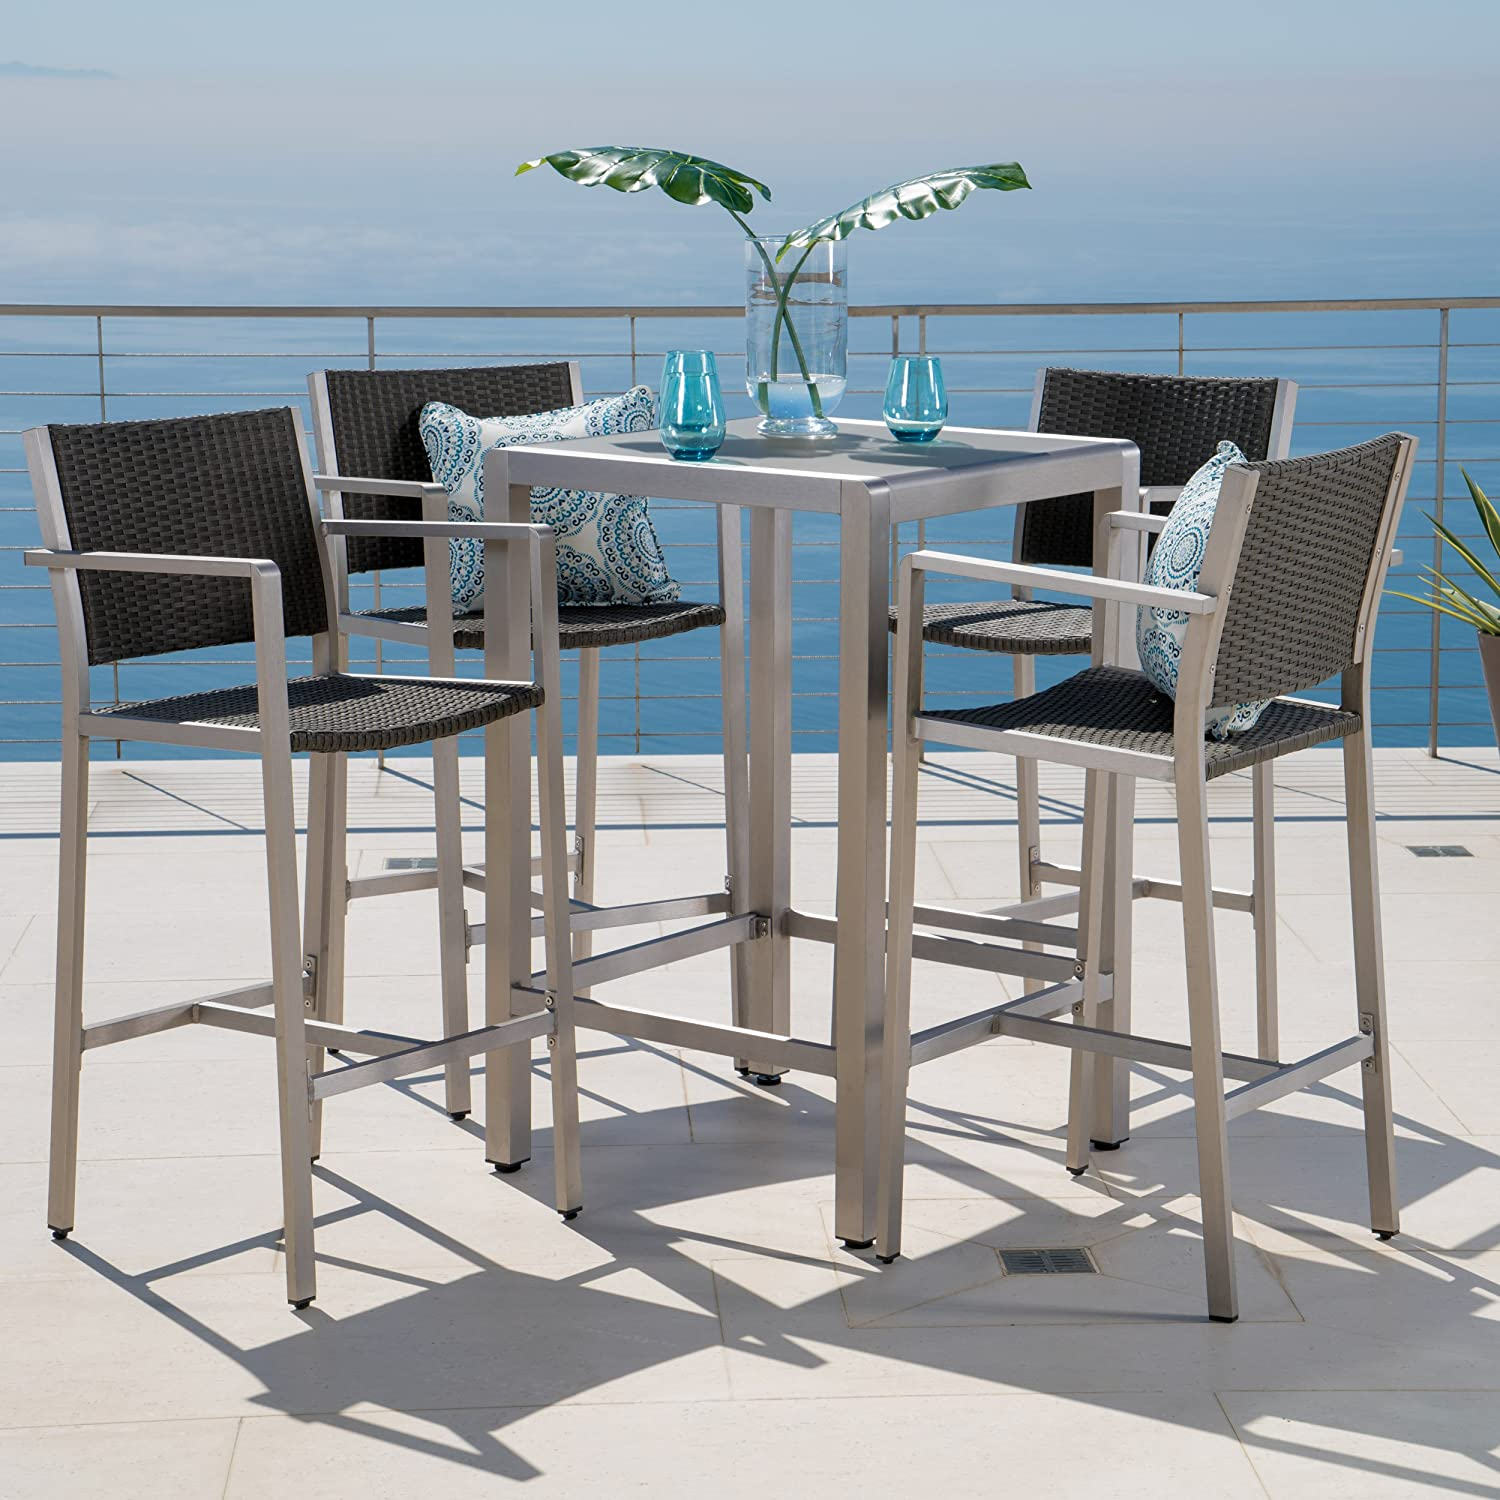 Amazon.com: Crested Bay Patio Furniture ~ 5 Piece Outdoor Wicker and ...